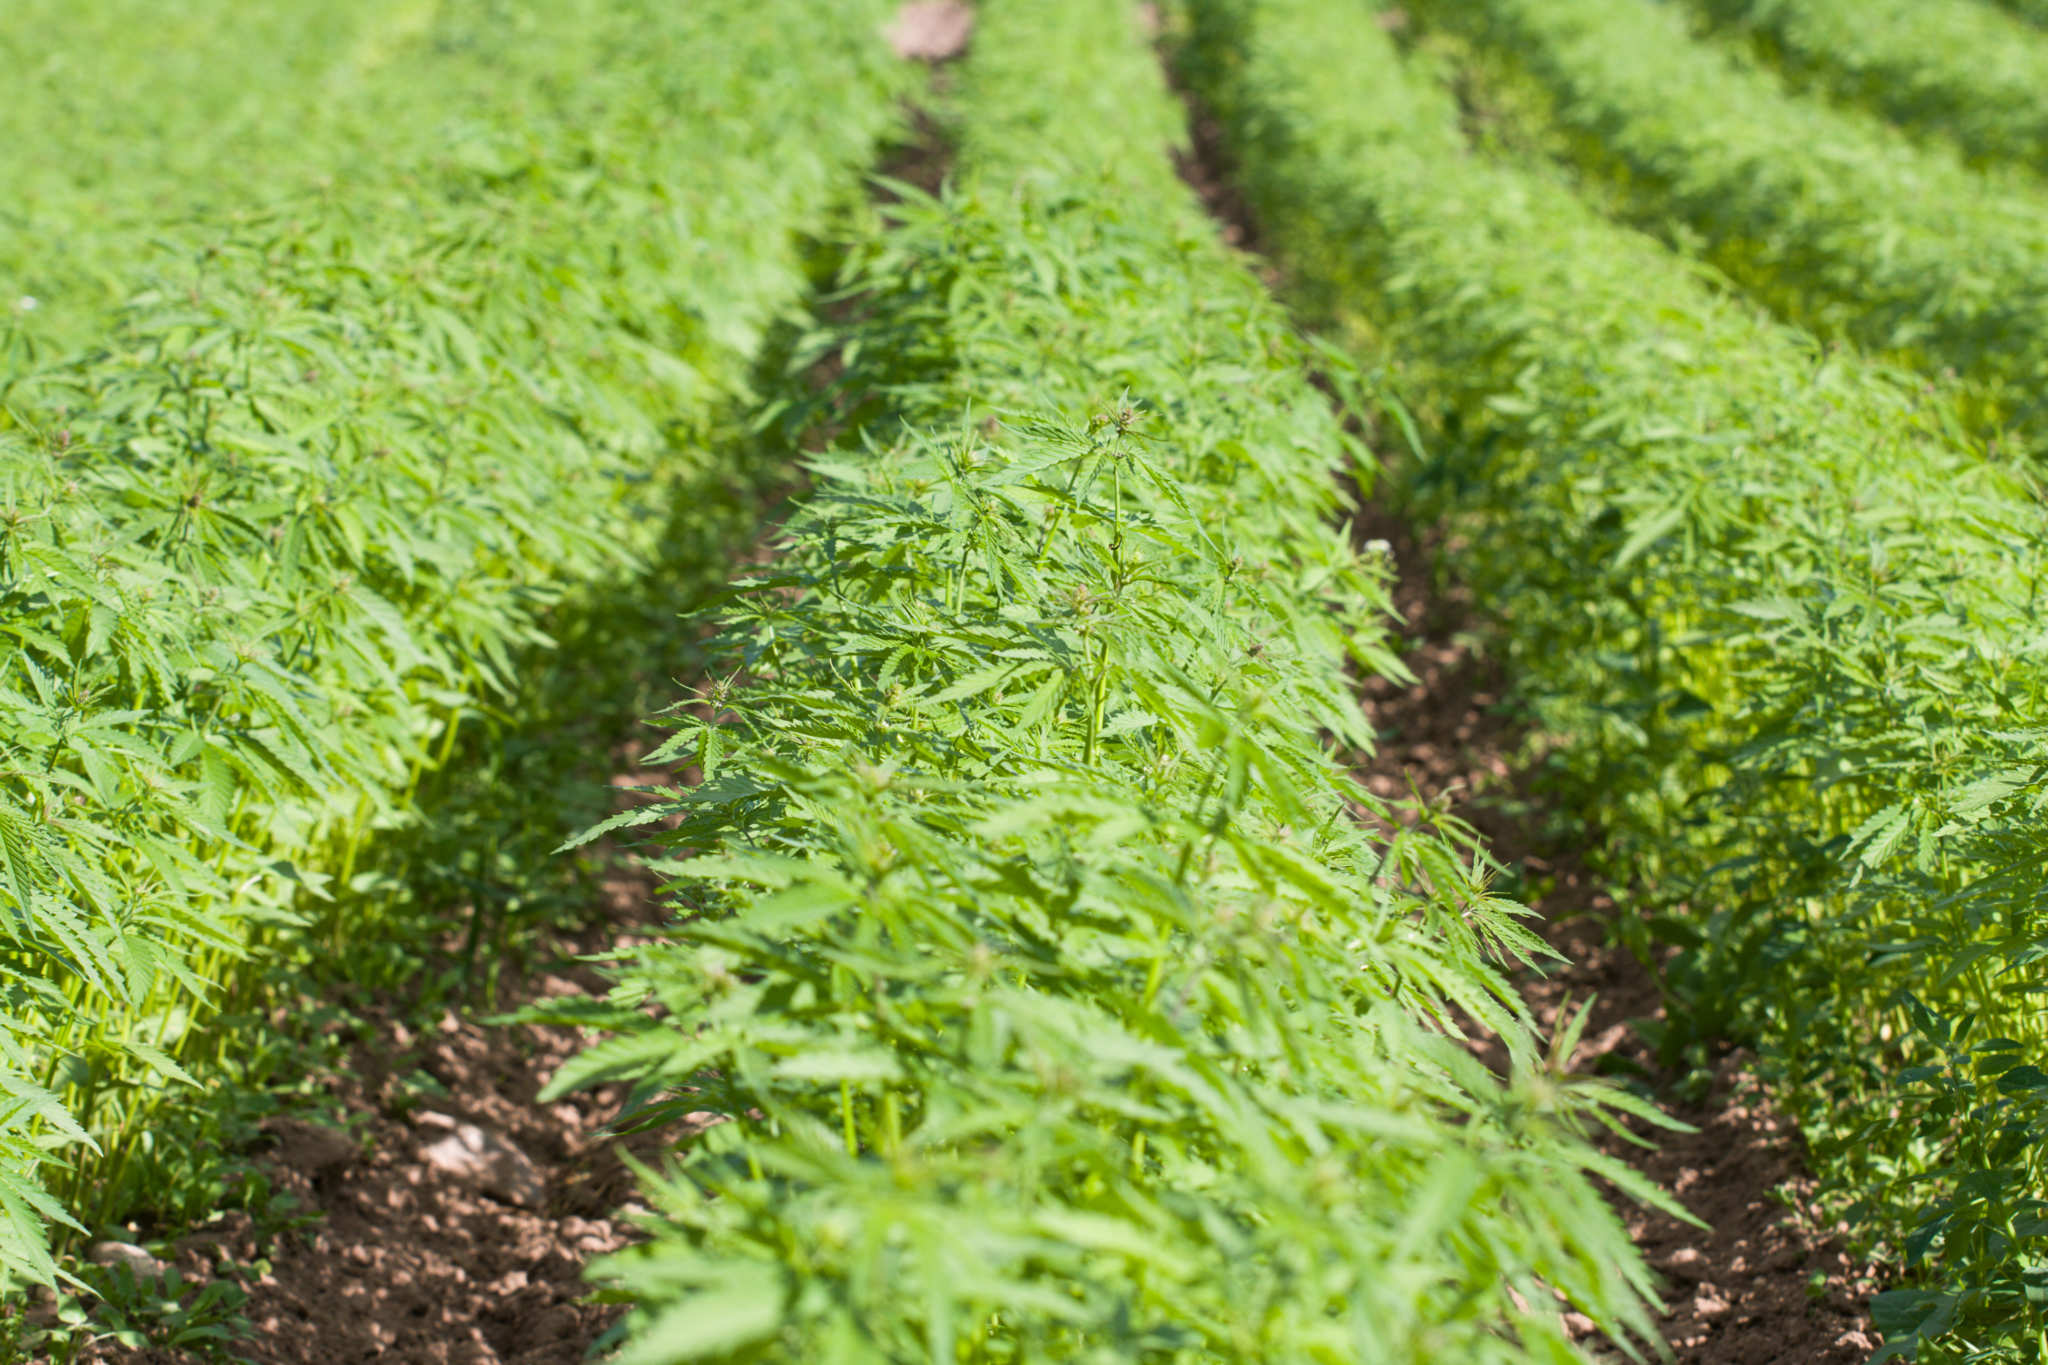 A hemp field, with young green hemp plants growing in many long densely packed rows. Under current regulations on hemp in the UK, farmers are forced to destroy large portions of the plant, while simultaneously the UK imports